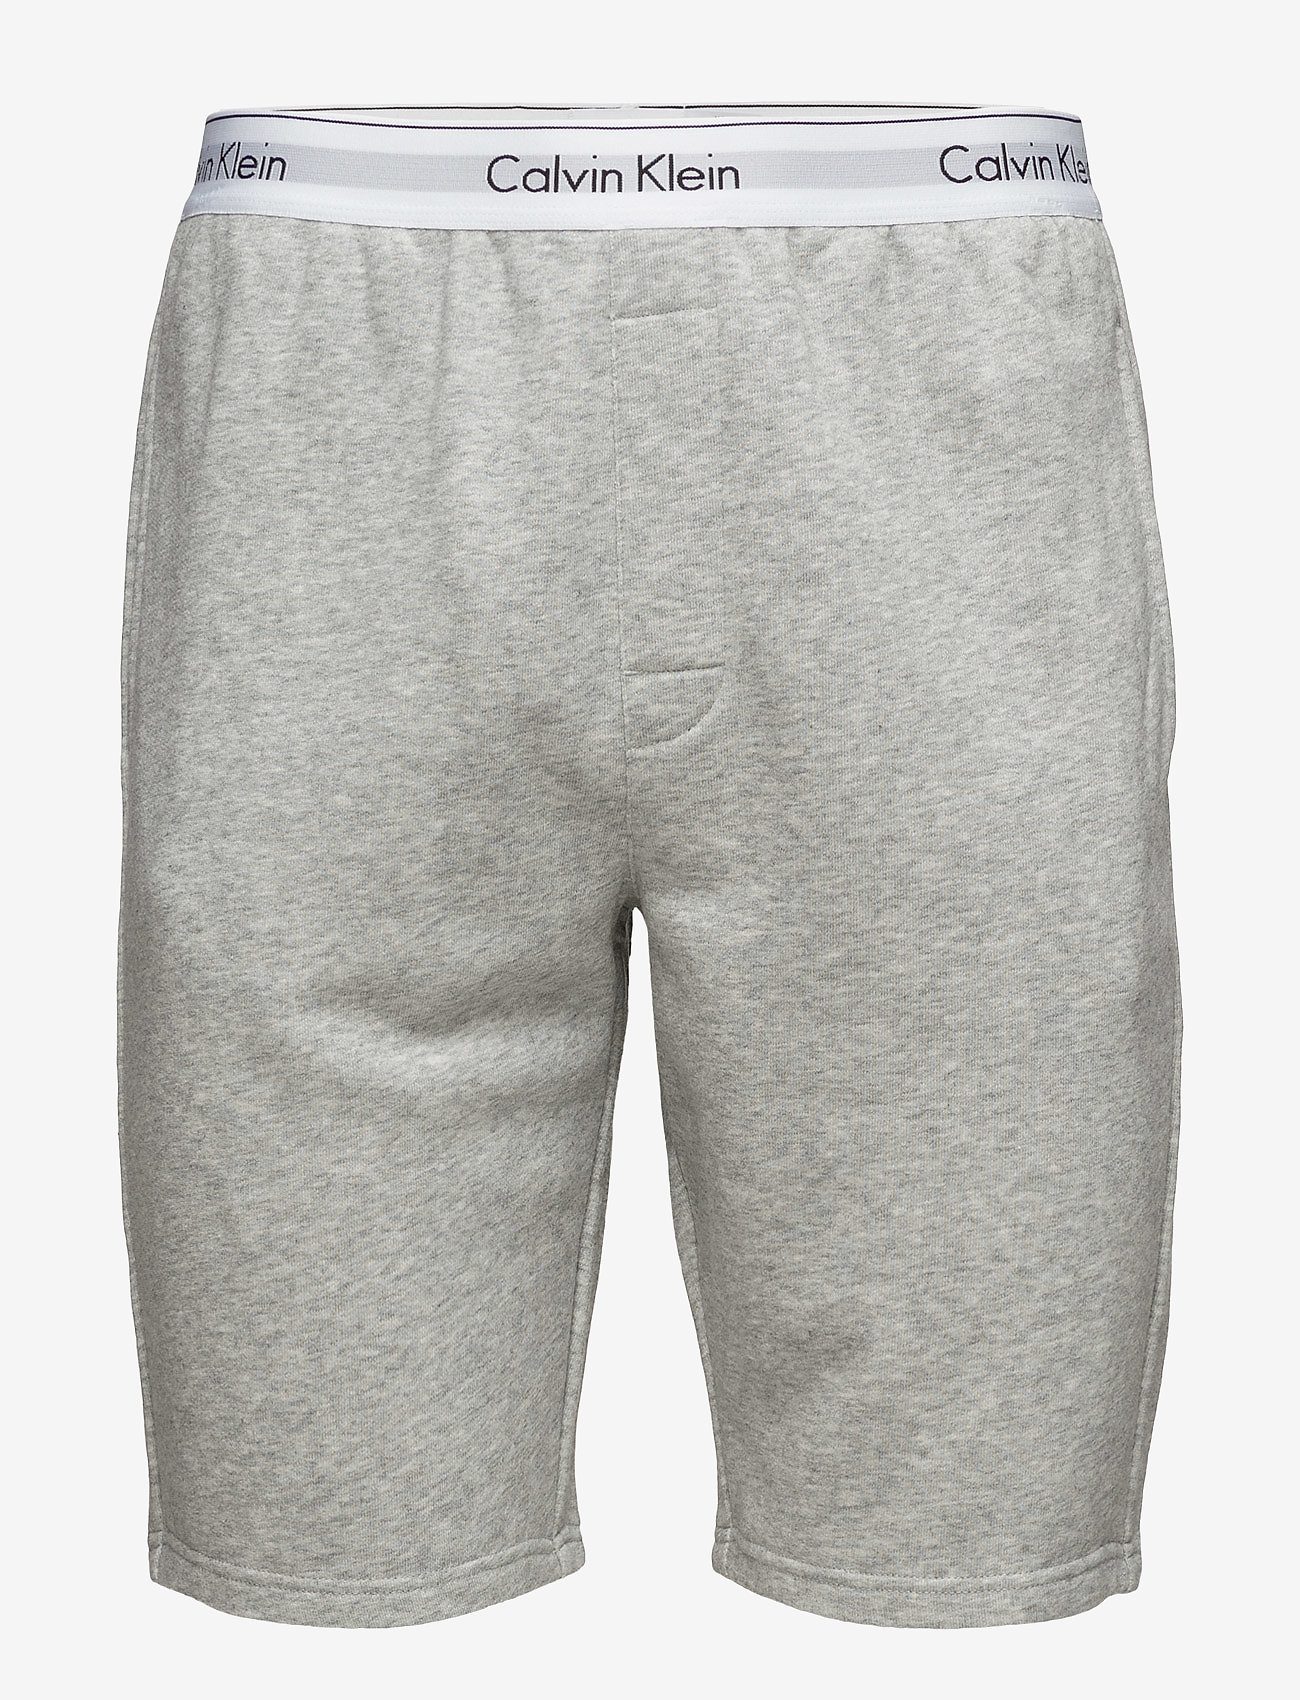 Calvin Klein - SHORT - broeken - grey heather - 0